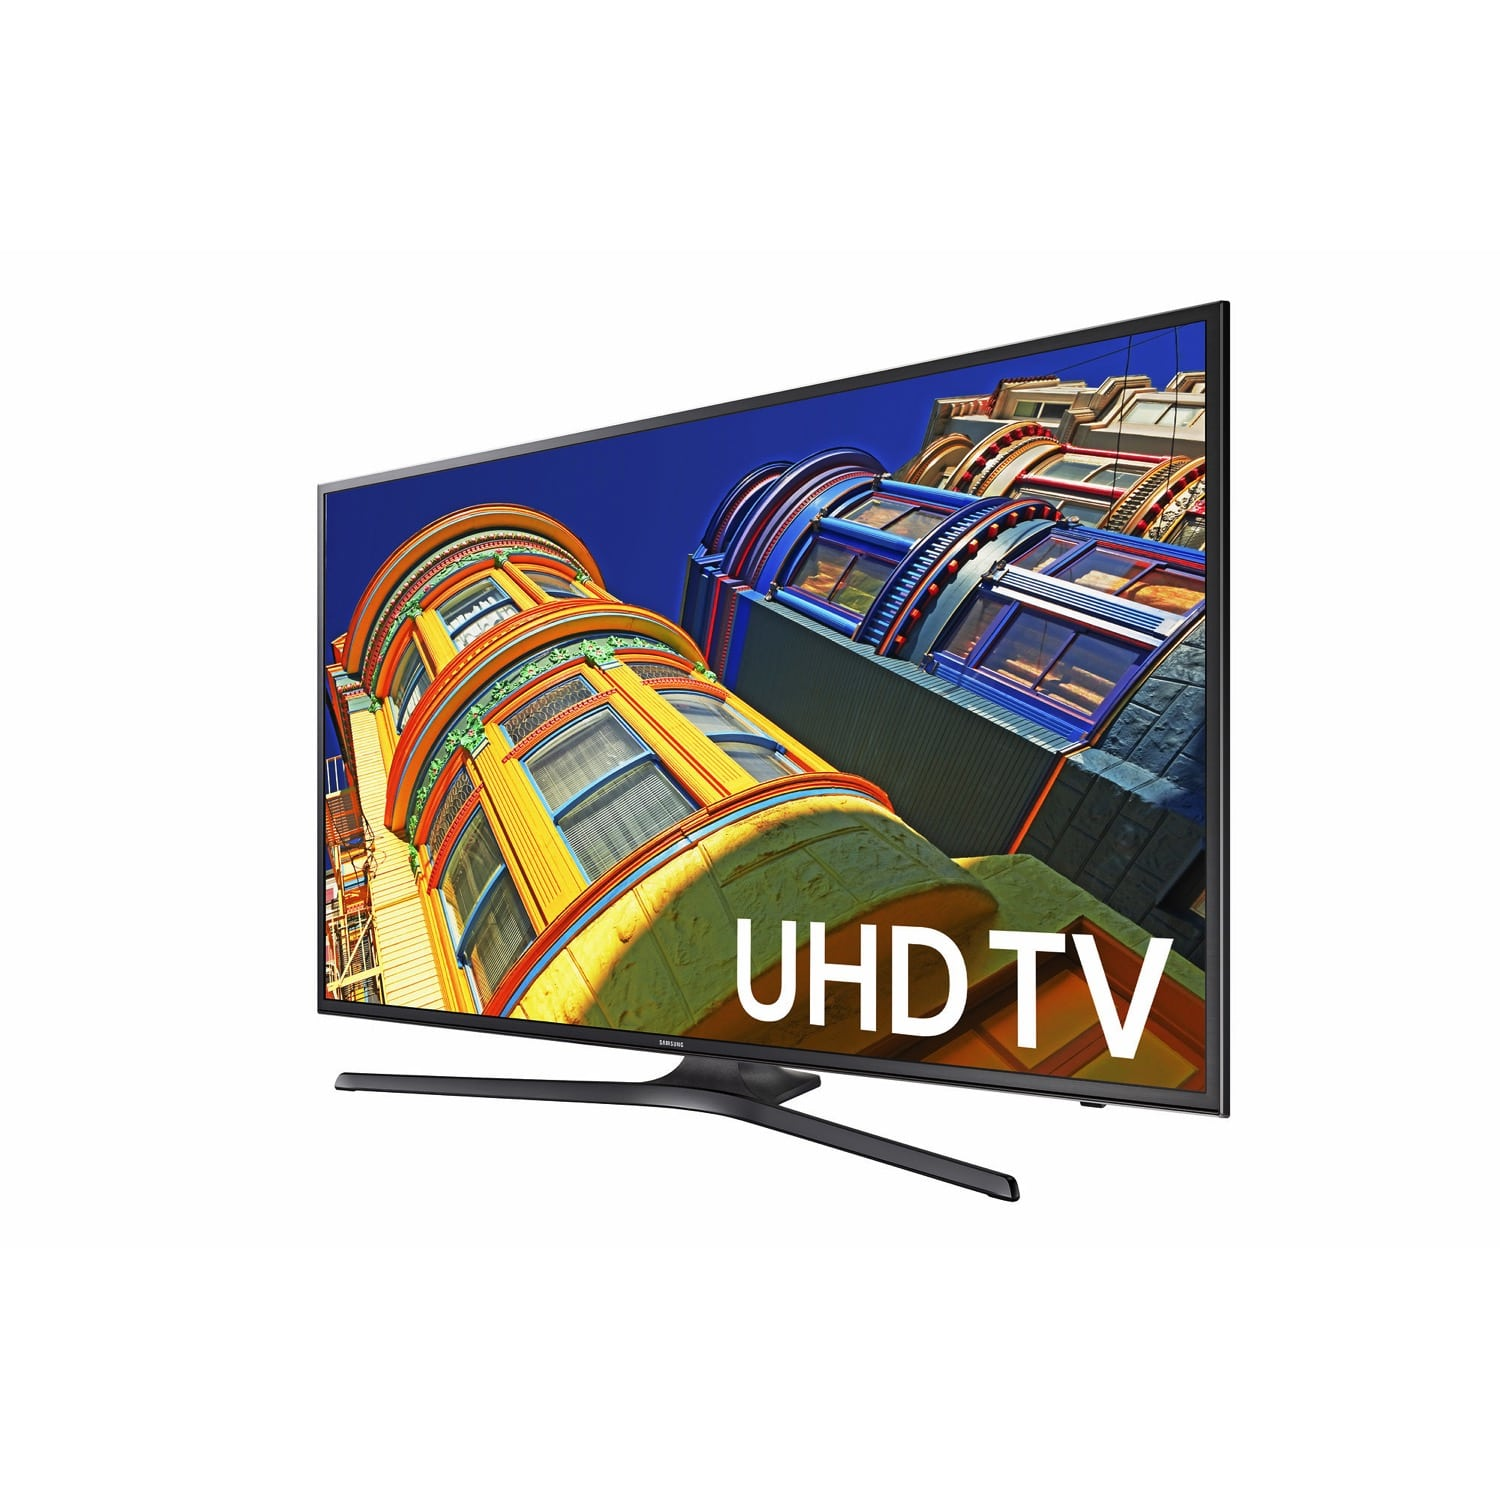 Samsung 65 inch 4K UHD Smart LED TV Model No UN65KU6290 2